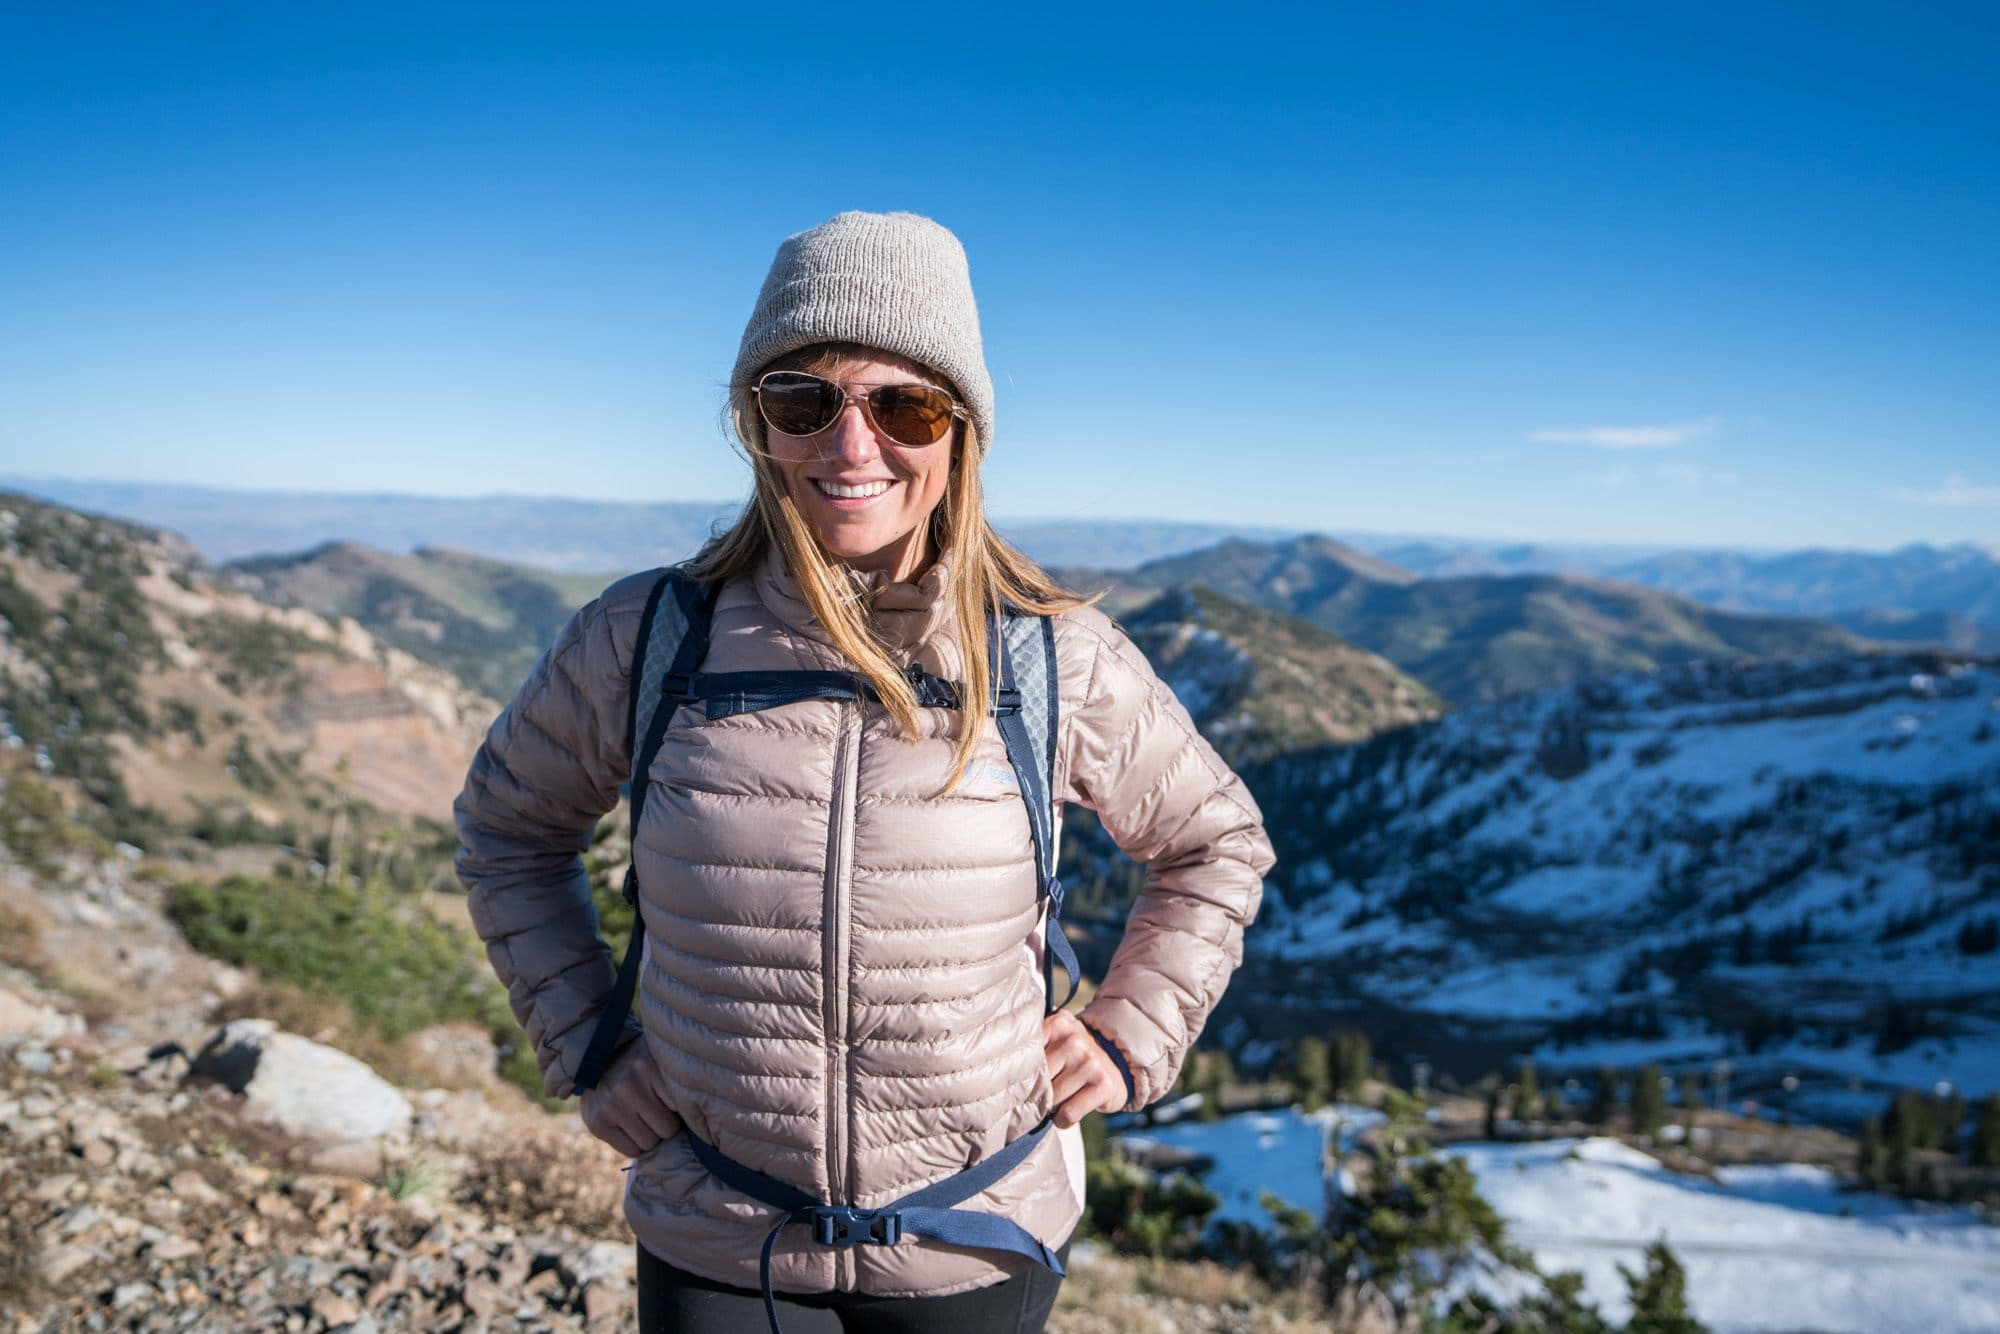 REI 18 Liter Flashpack // Read my gear review of the best travel bags by REI that offer durability, smart design and function, while being priced lower than competing outdoor brands.